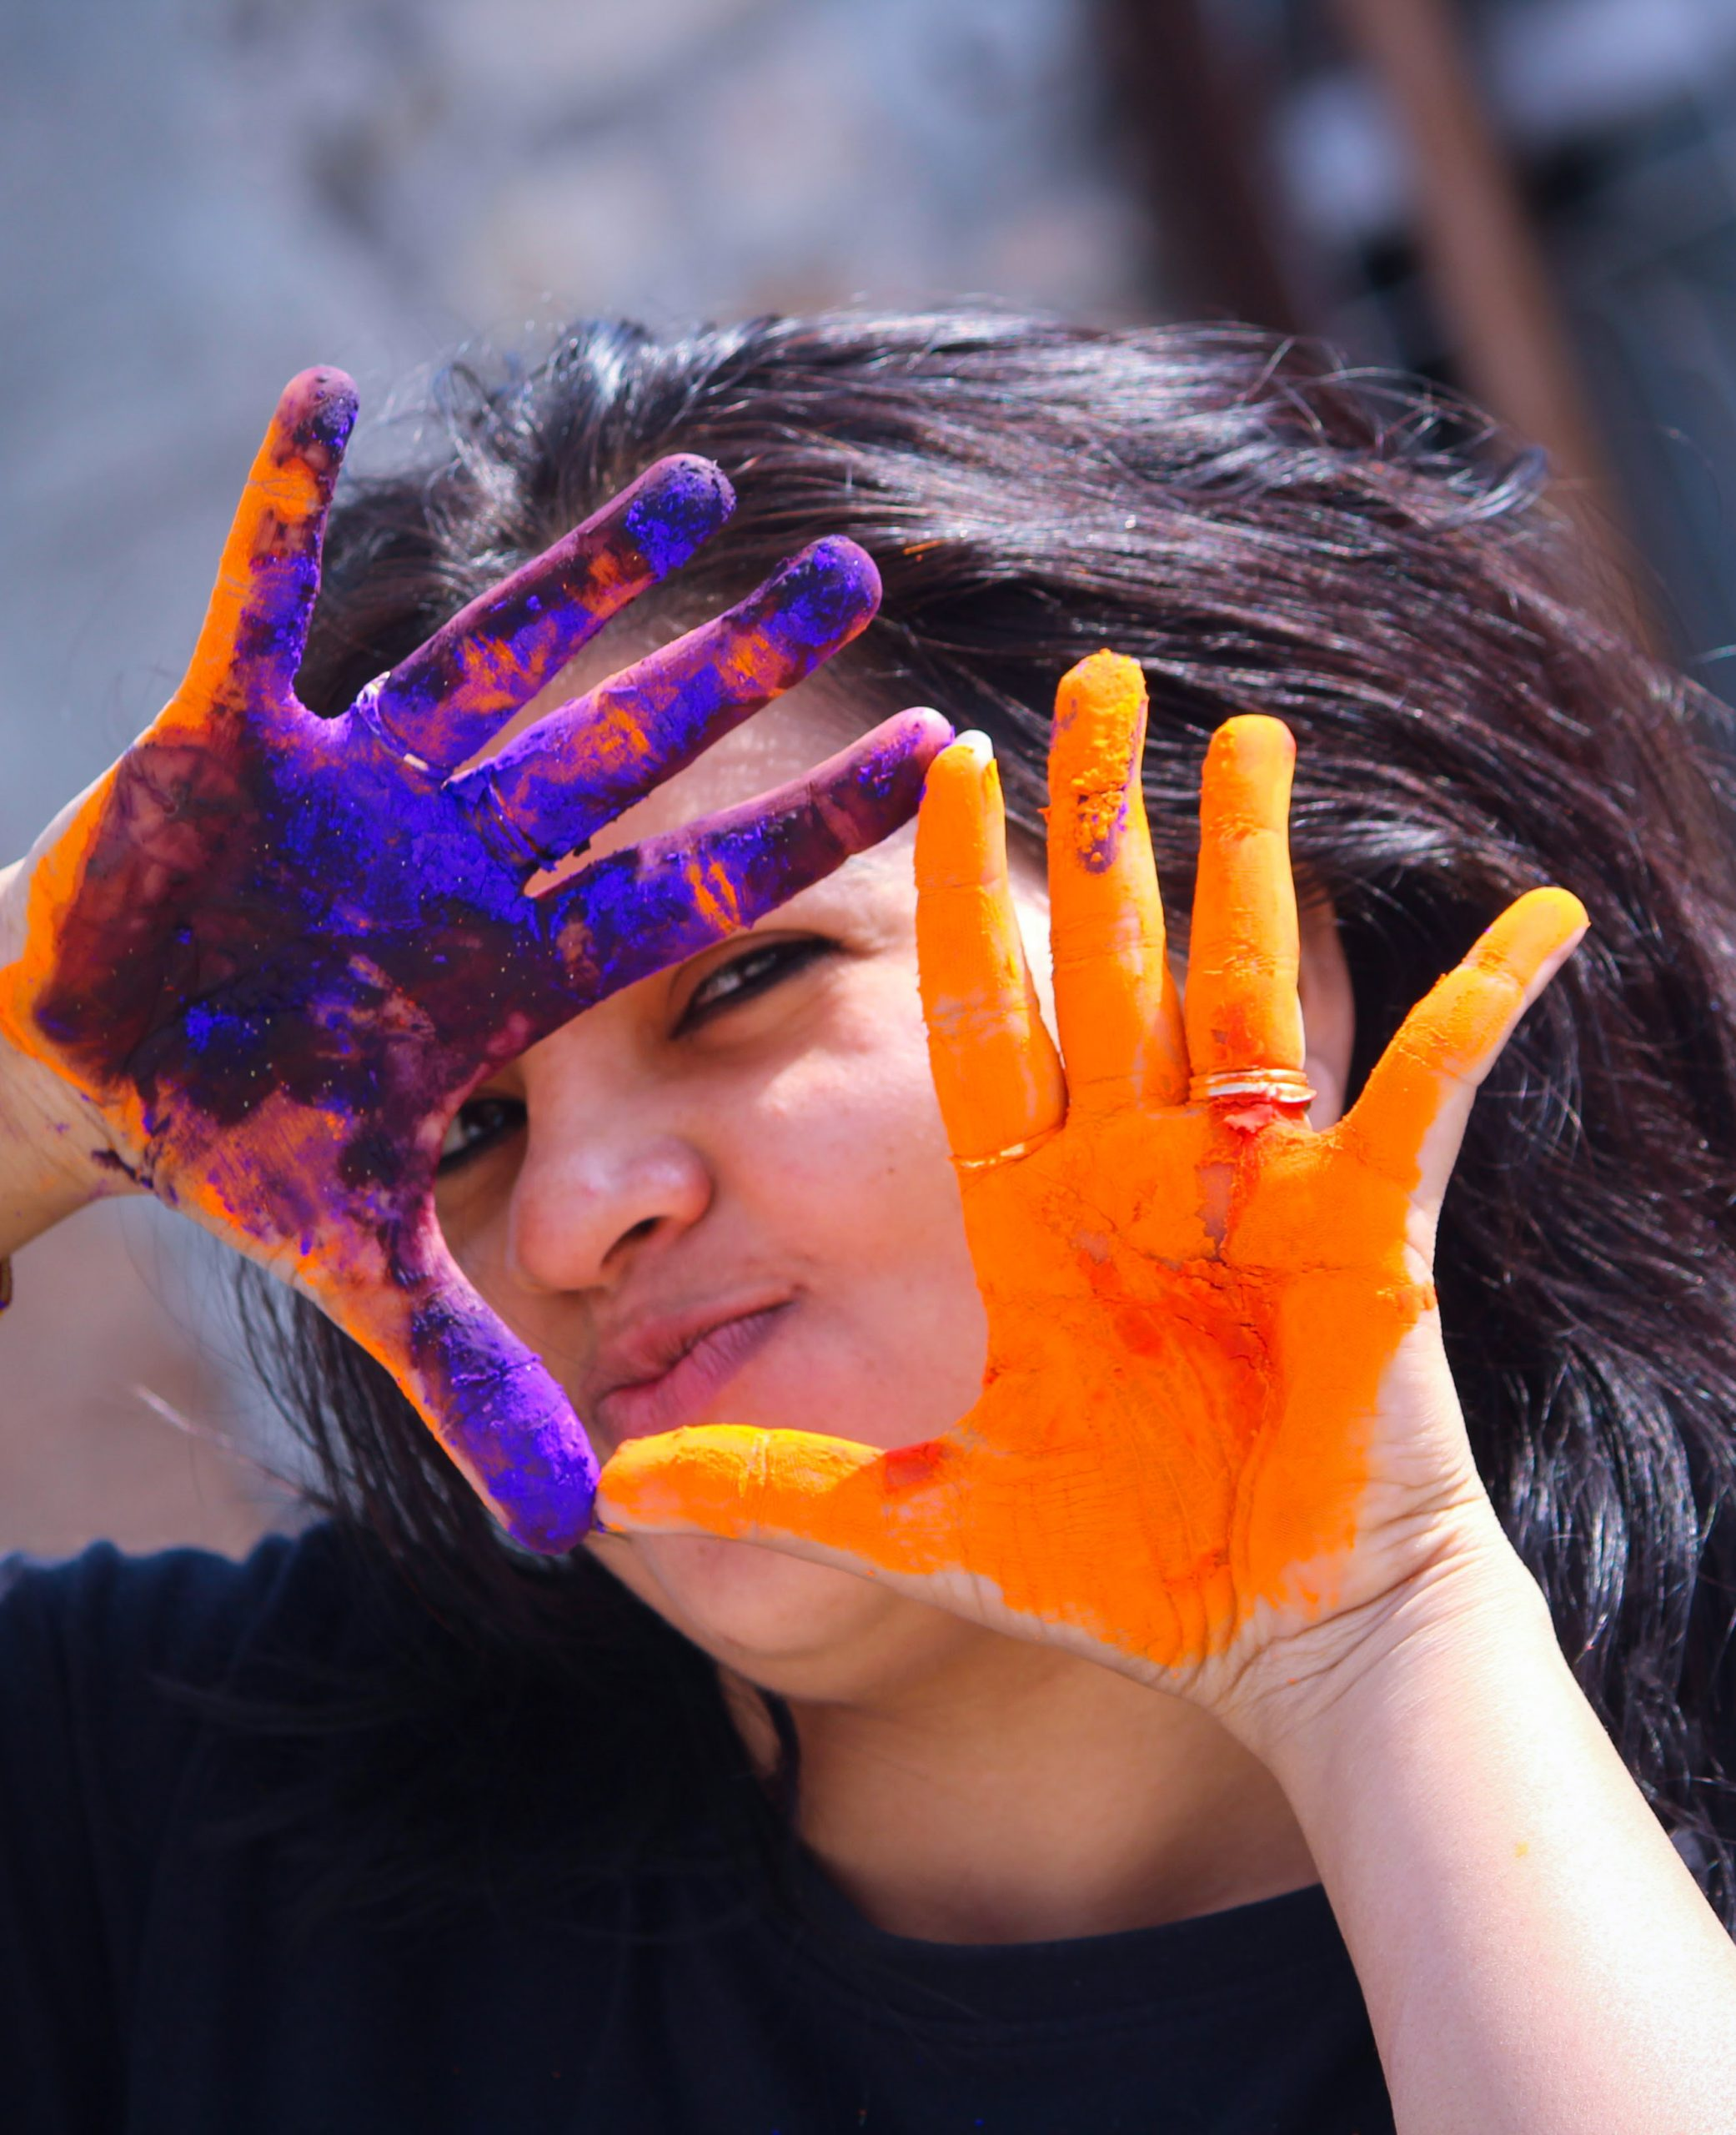 A girl's hands painted with Holi colors